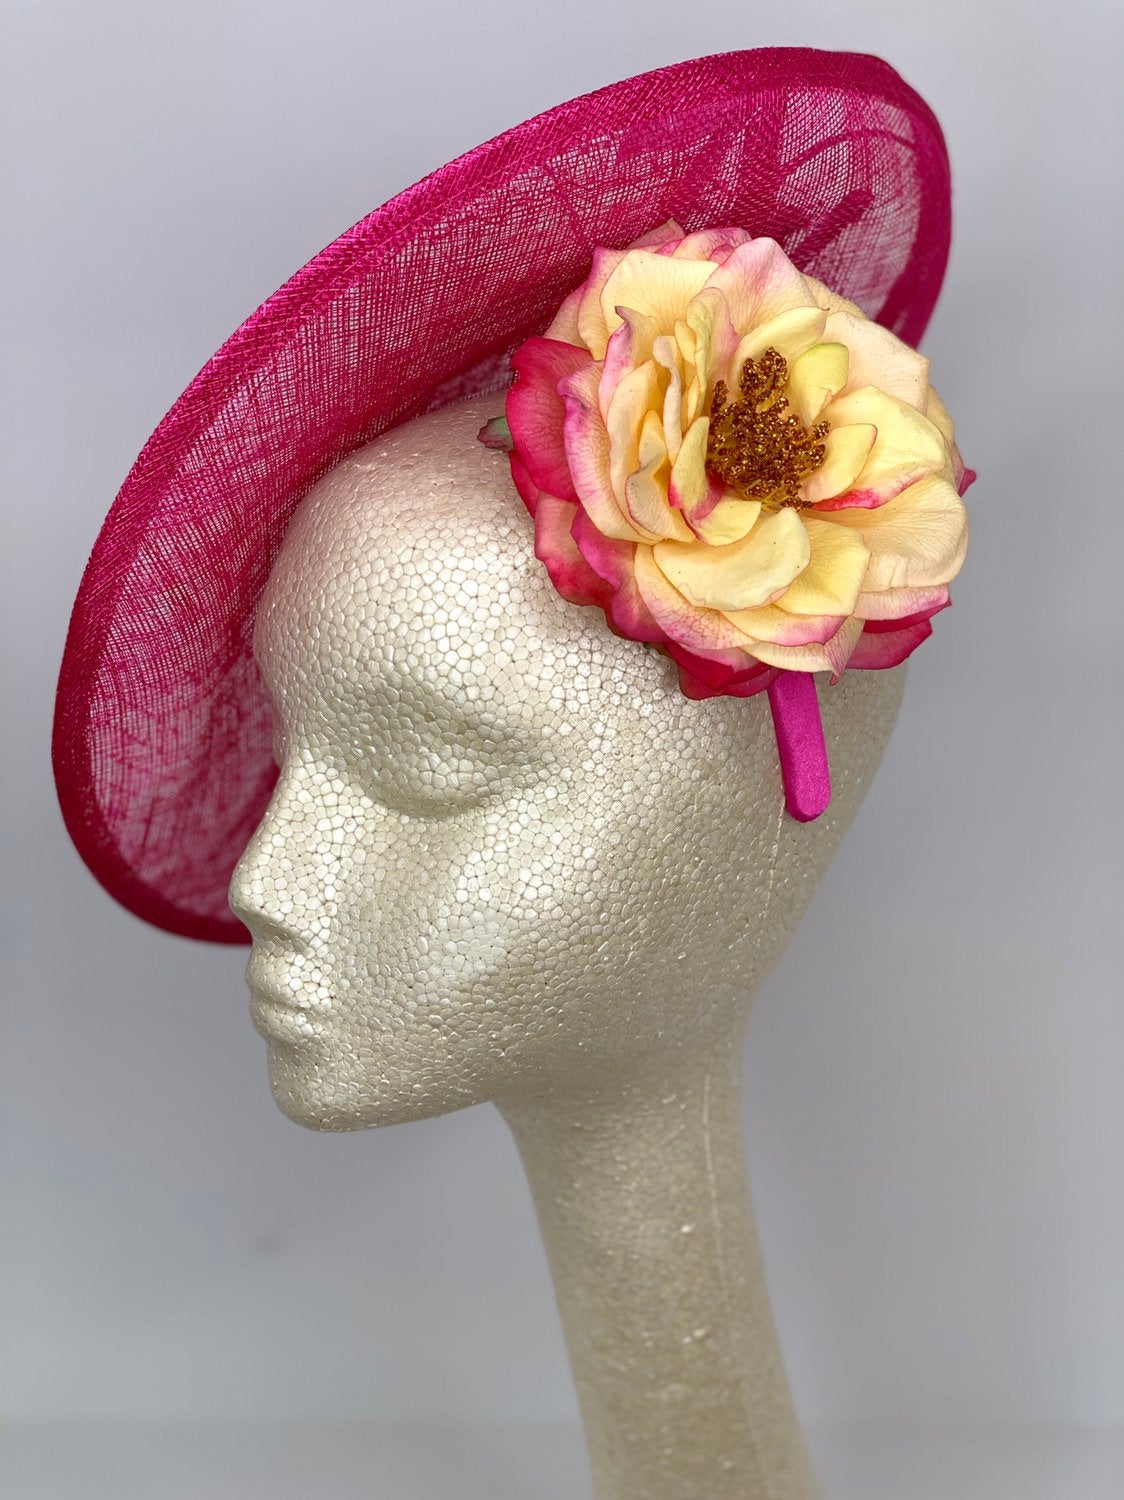 THH036 Pink Fascinator with Yellow Rose, Pink Derby Hat, Womens Tea Party Hat, Church Hat, Derby Hat, Fancy Hat, Royal Hat, Tea Party Hat,